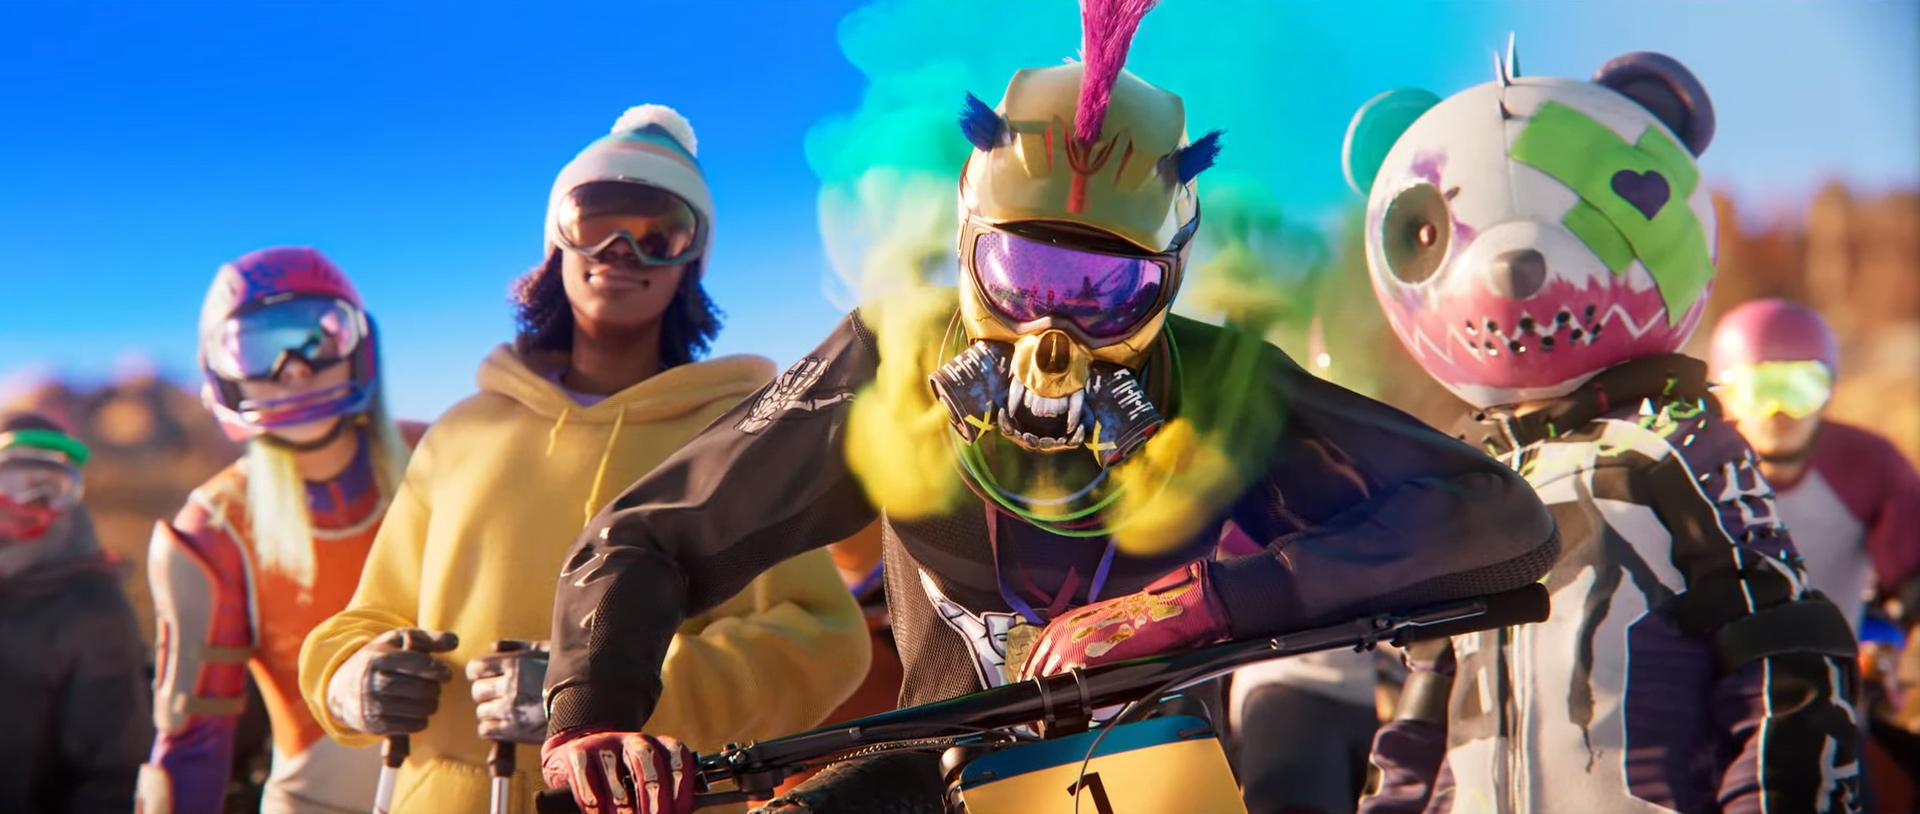 Riders Republic is an out-of-control extreme sports multiplayer game from Ubisoft screenshot